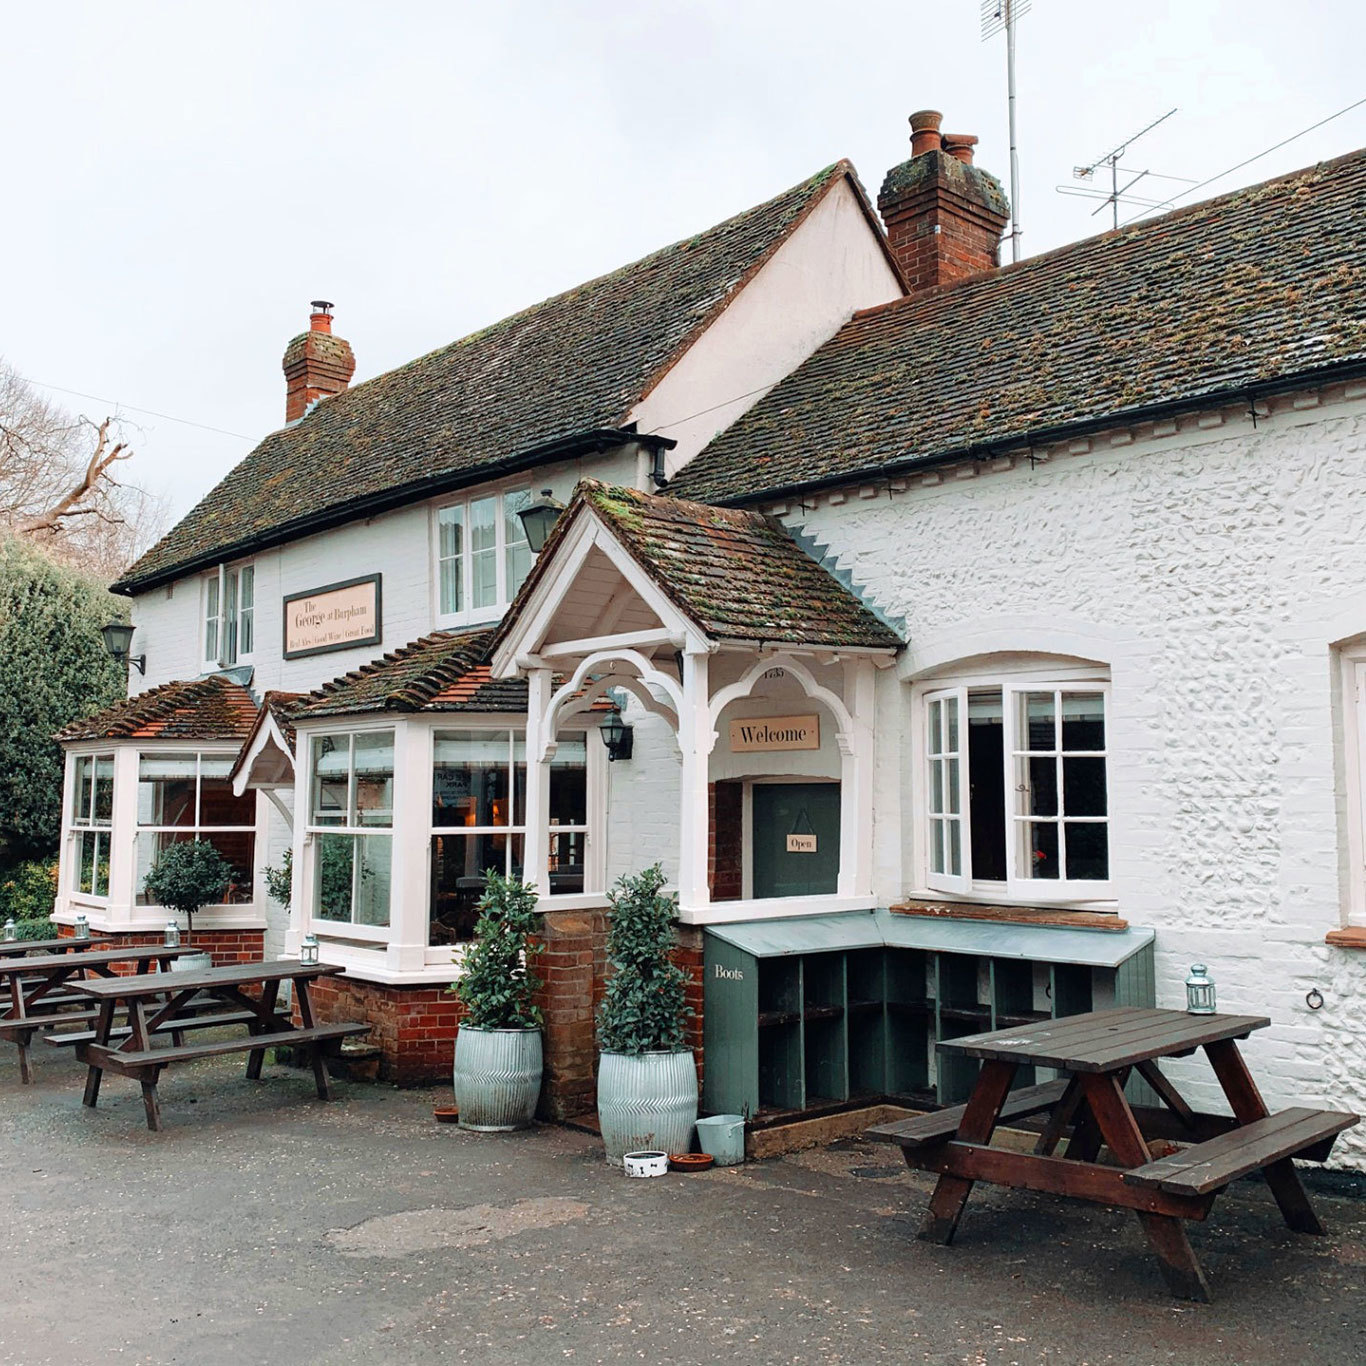 Beautiful pub, lovely inside and out in a beautiful village